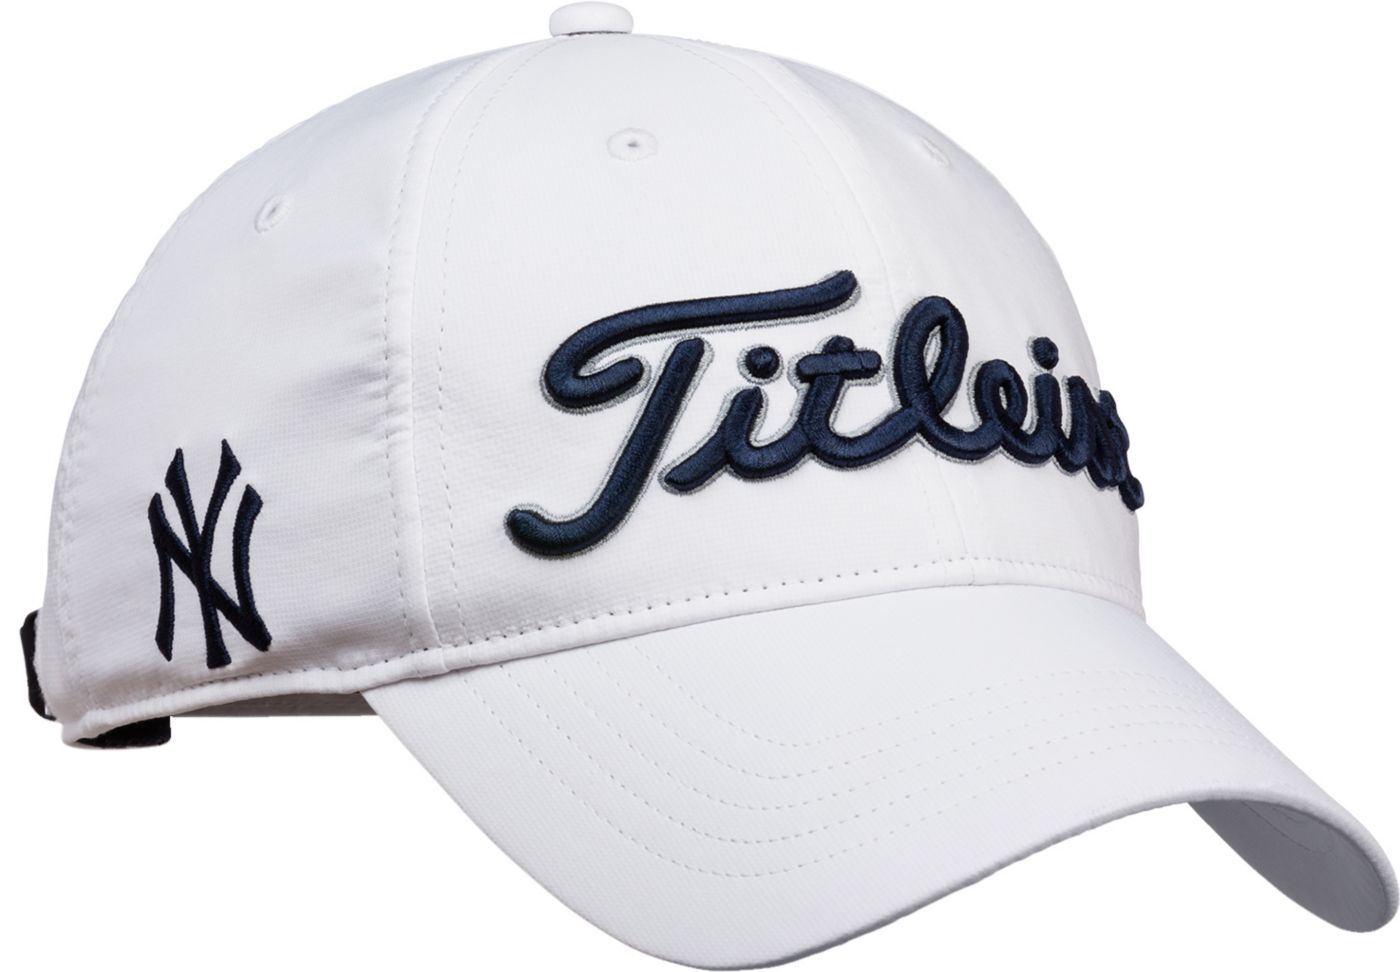 Titleist Men's New York Yankees Performance Golf Hat